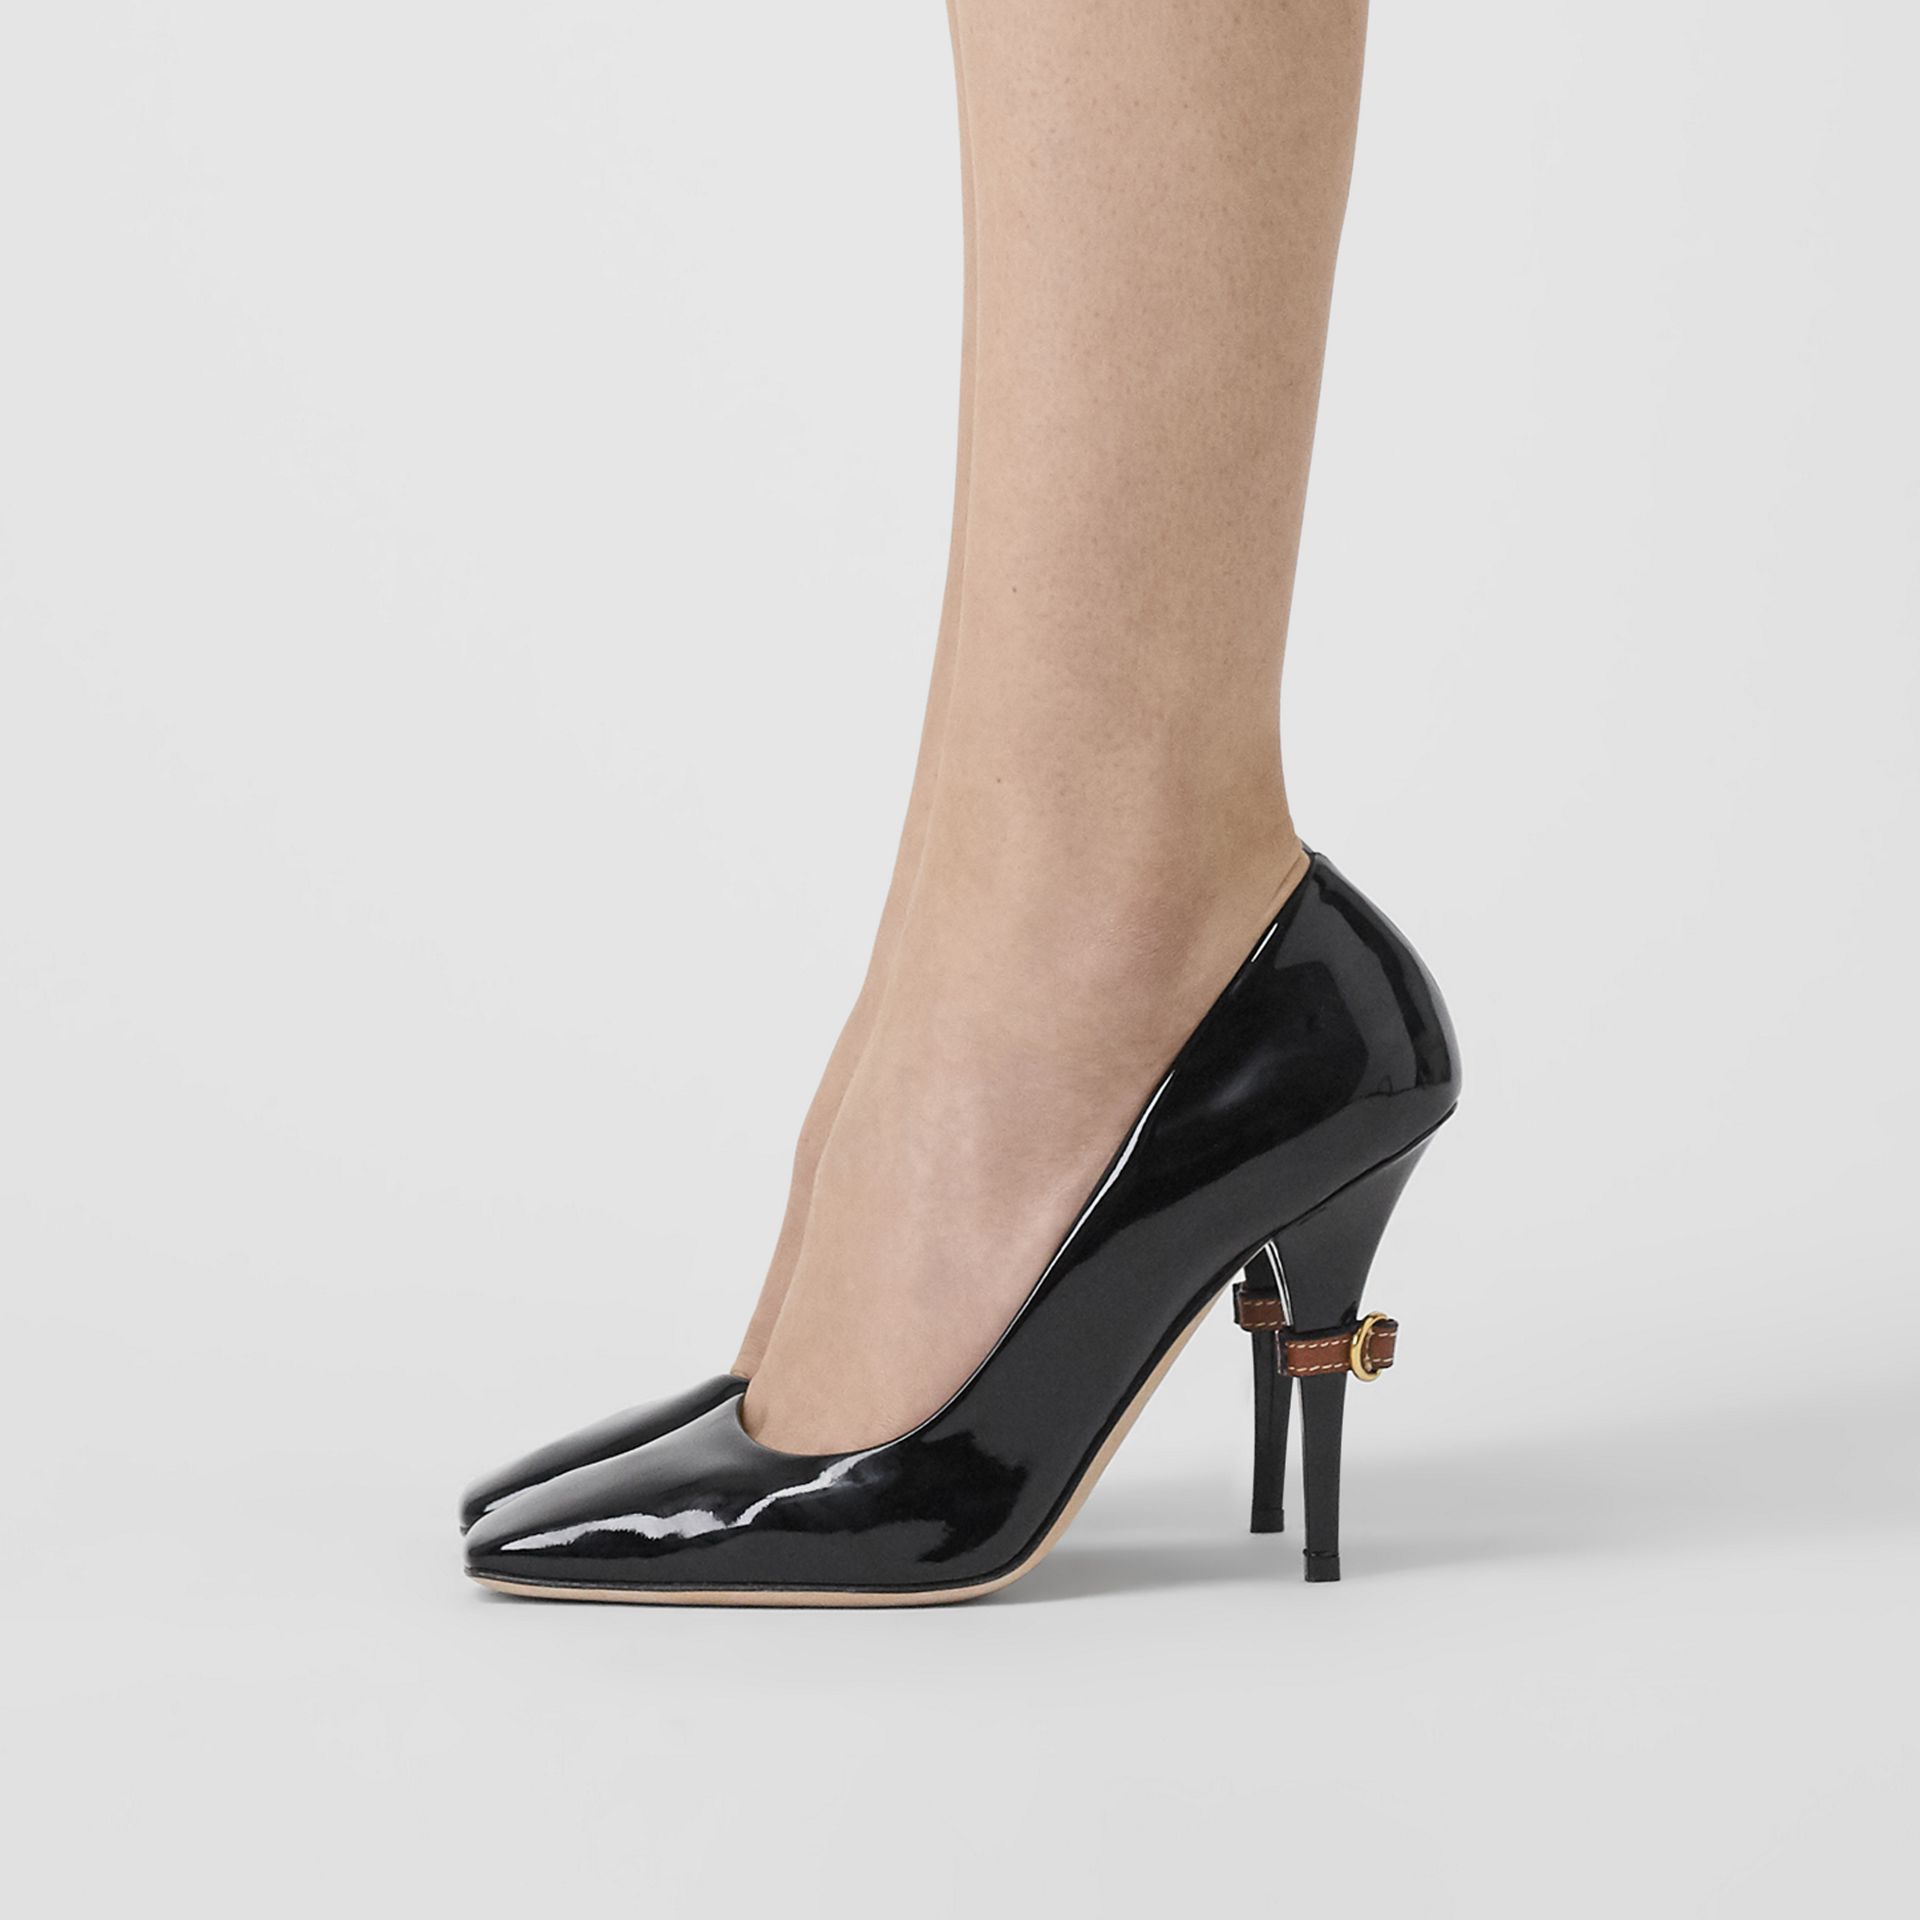 D-ring Detail Patent Leather Square-toe Pumps in Black - Women | Burberry United States - gallery image 2